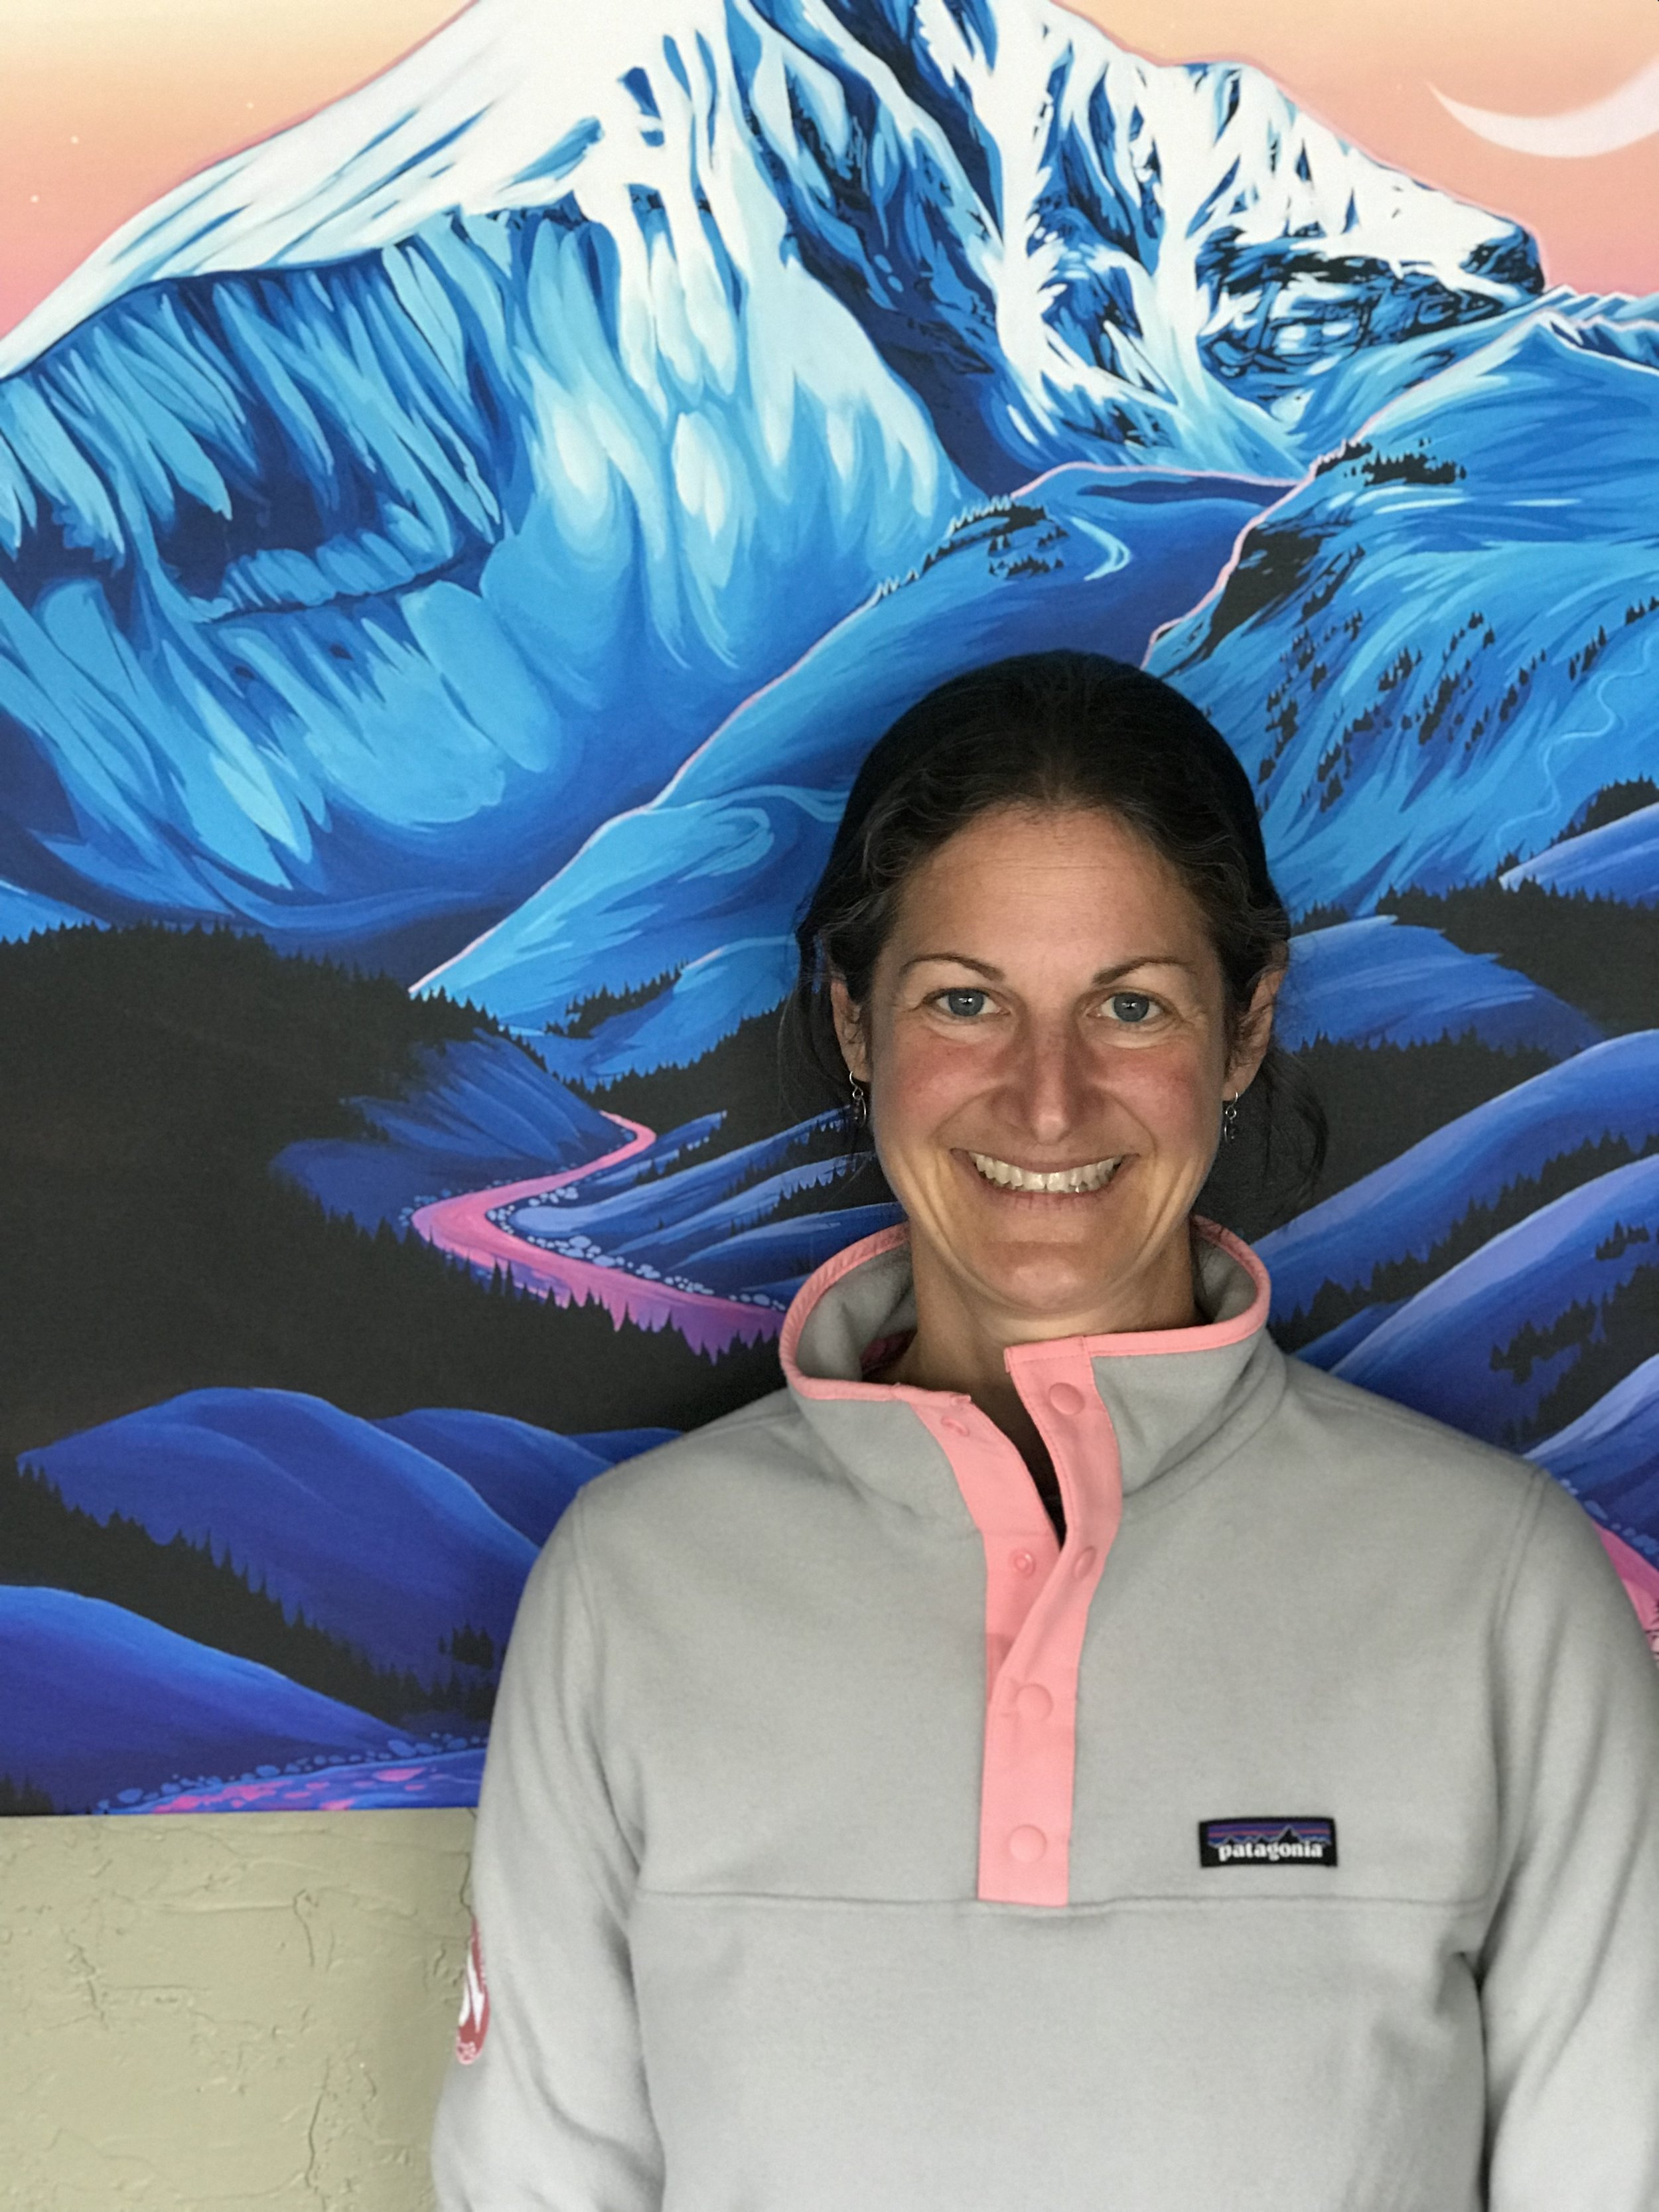 Our New Program Director - Sarah Lawrence!  Sarah has spent the last 15 years working with adolescents and families. She recently relocated to Bozeman after a stint in Vermont and is happy to be reunited with her community (and the mountains). It comes as no surprise that Sarah is full of passion; she thrives when outdoors and loves them most when she can share them with others. Connect at sarah@byep.org